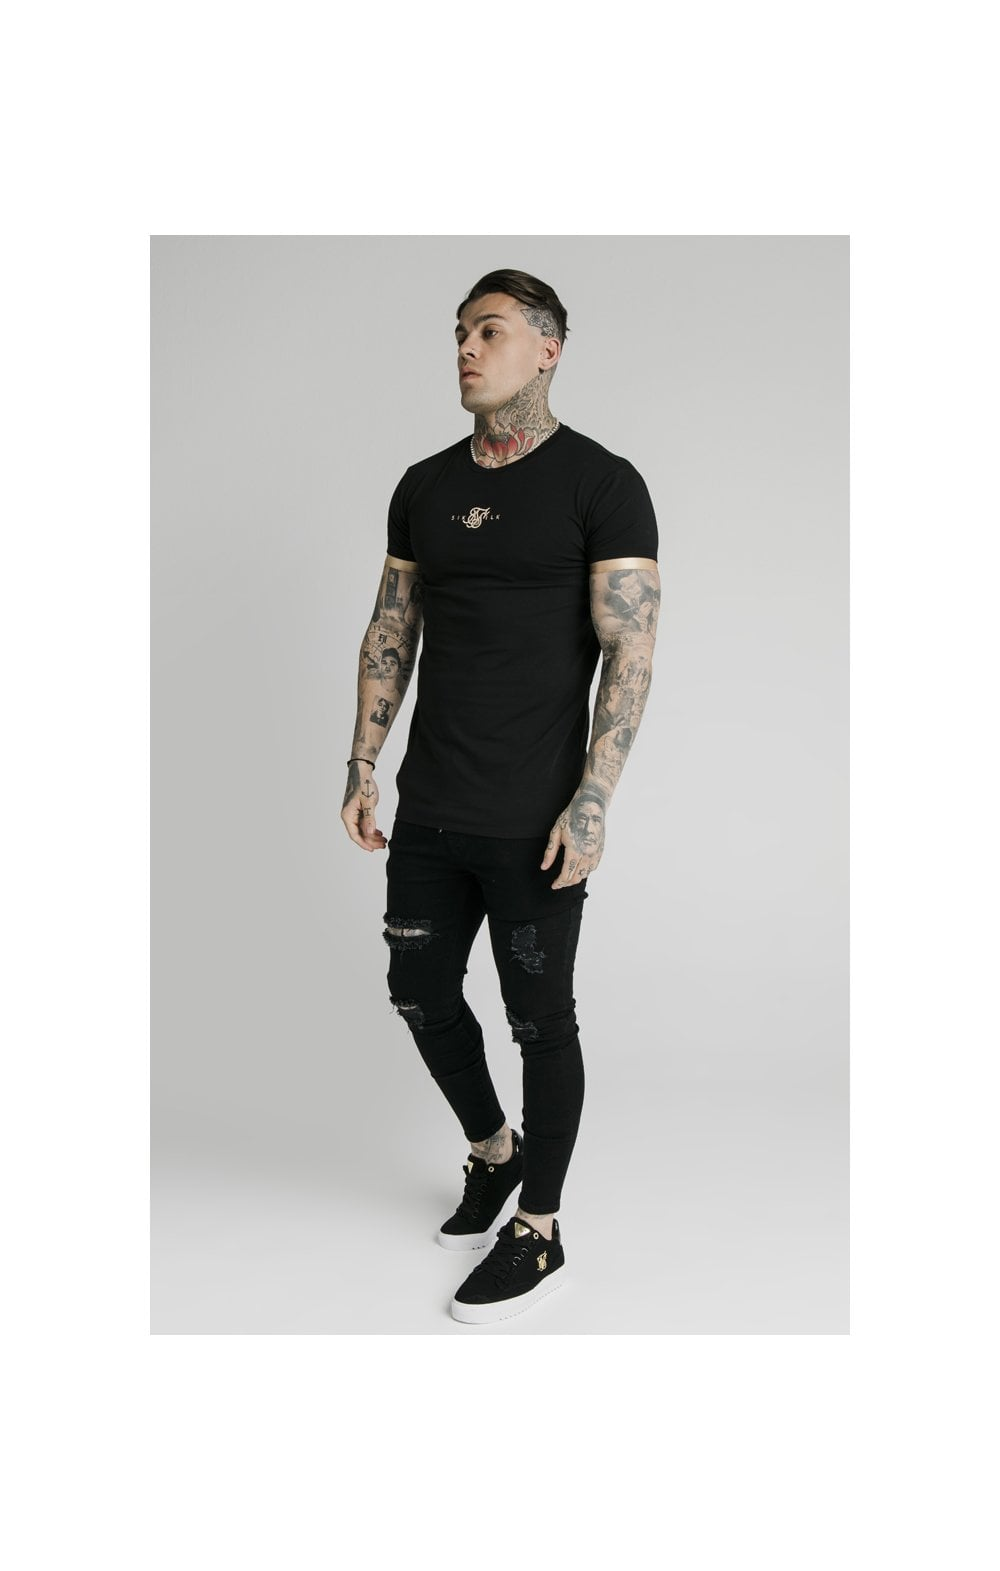 SikSilk S/S Inset Cuff Gym Tee – Black & Gold (5)